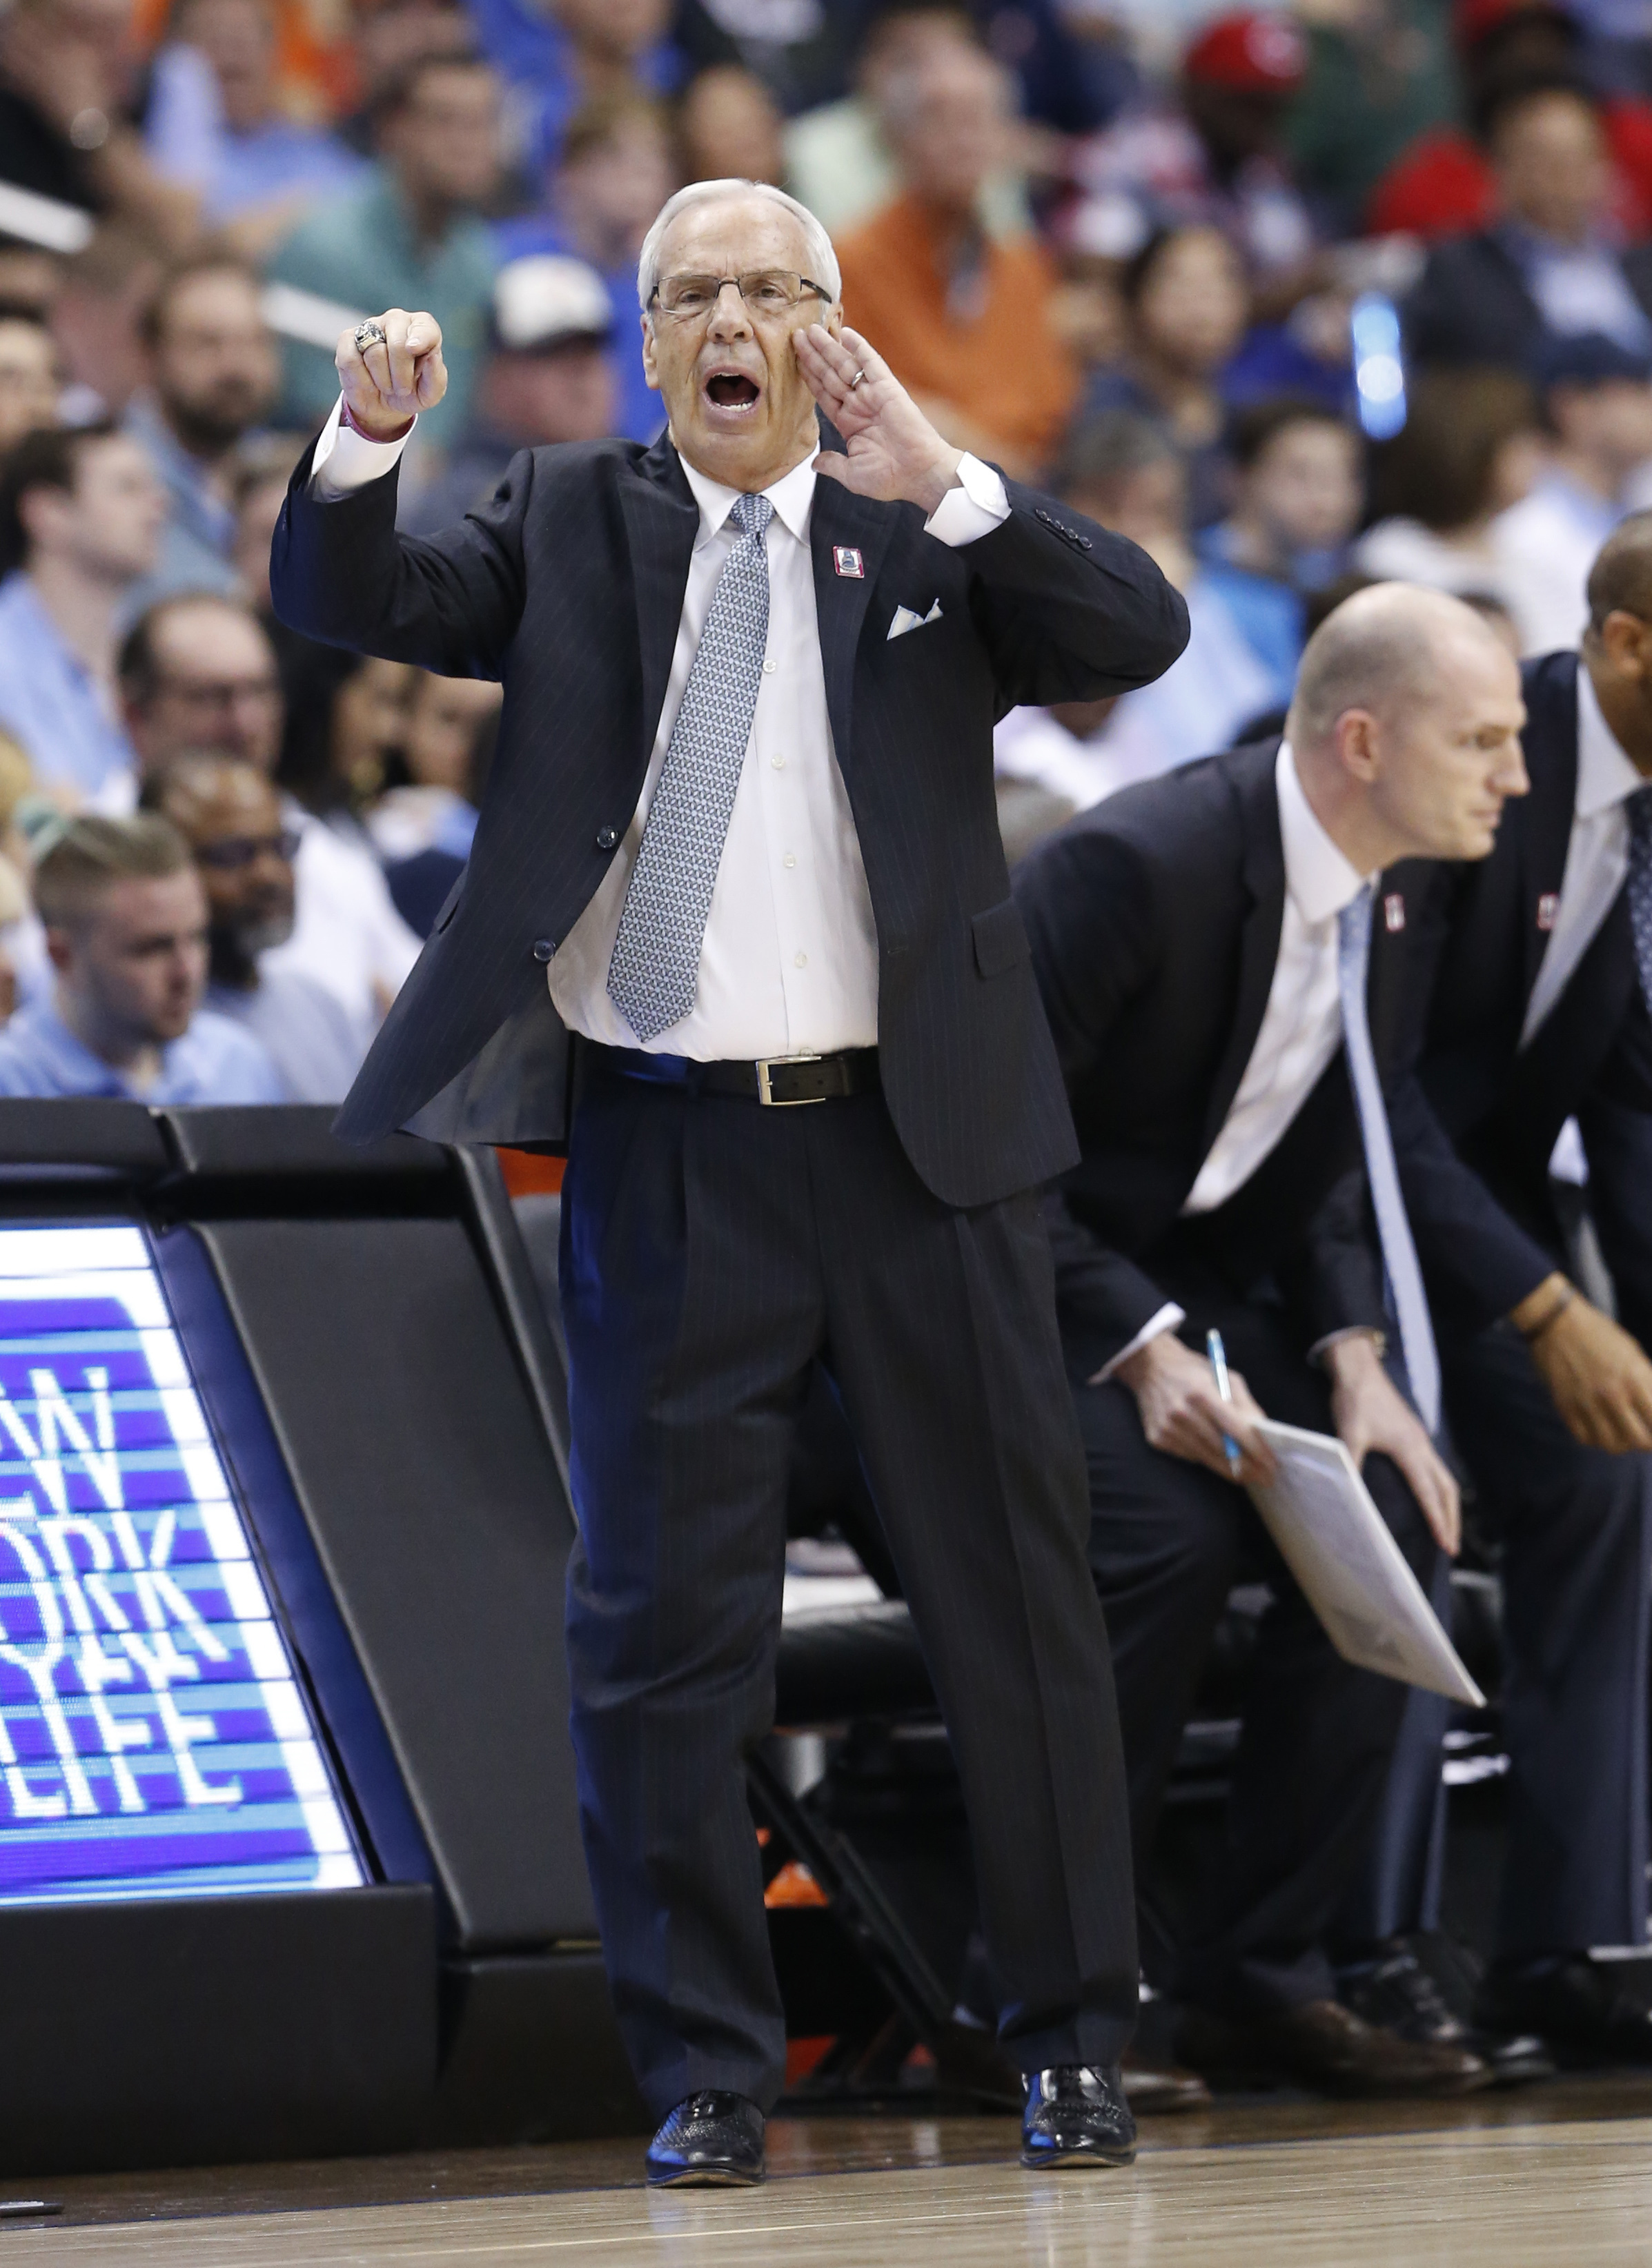 North Carolina coach Roy Williams talks to his team during the second half against Notre Dame in an NCAA college basketball game in the Atlantic Coast Conference men's tournament, Friday, March 11, 2016, in Washington. (AP Photo/Steve Helber)